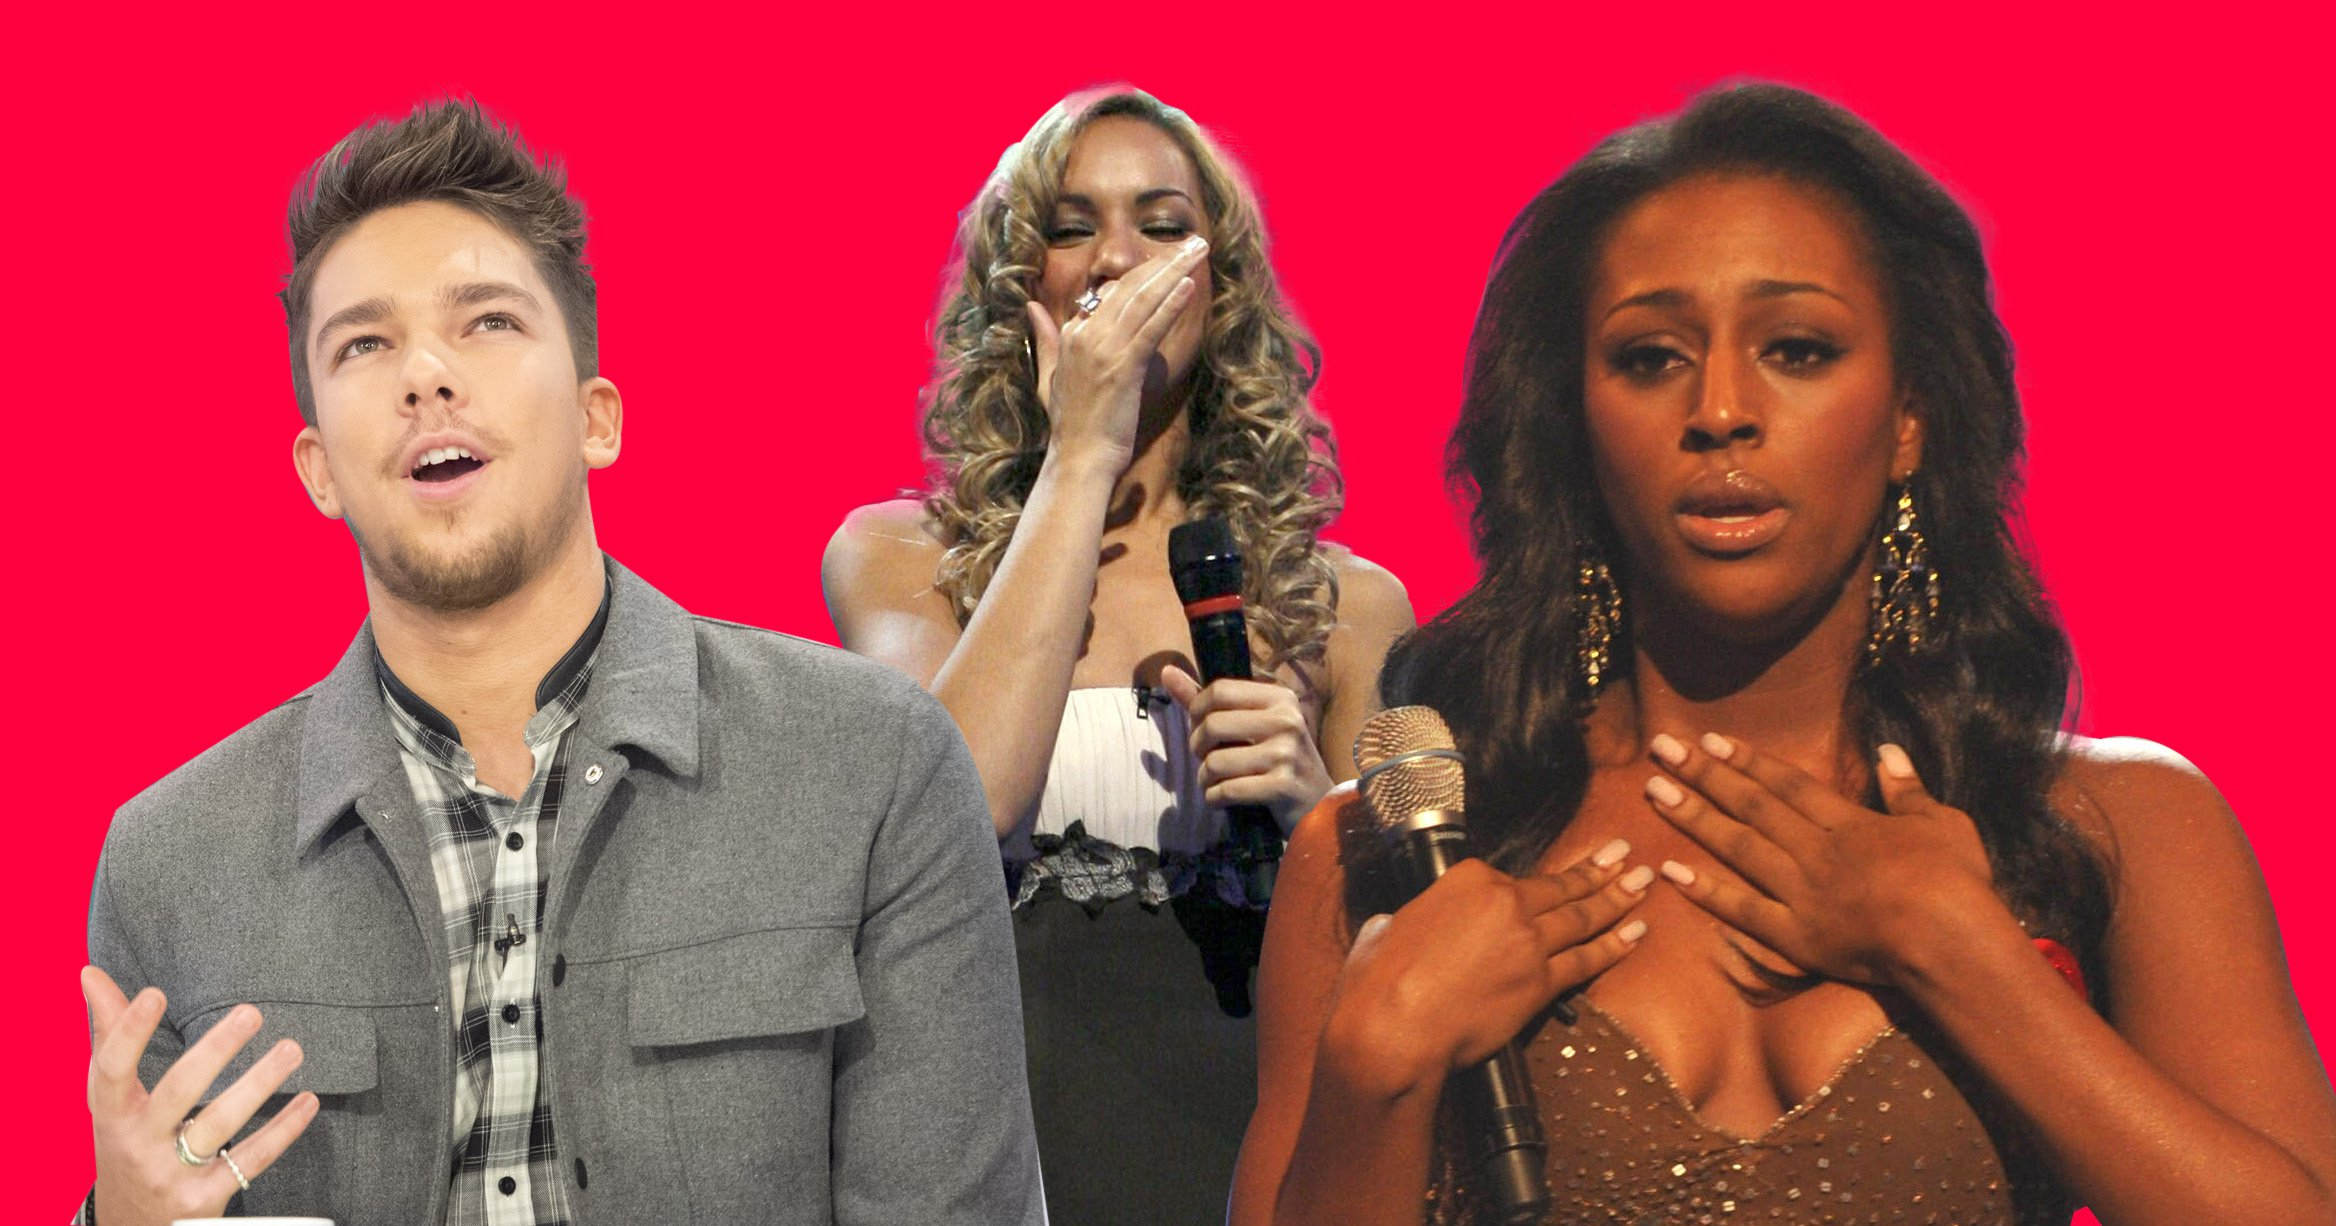 X Factor final to be held at ExCel - contact PR